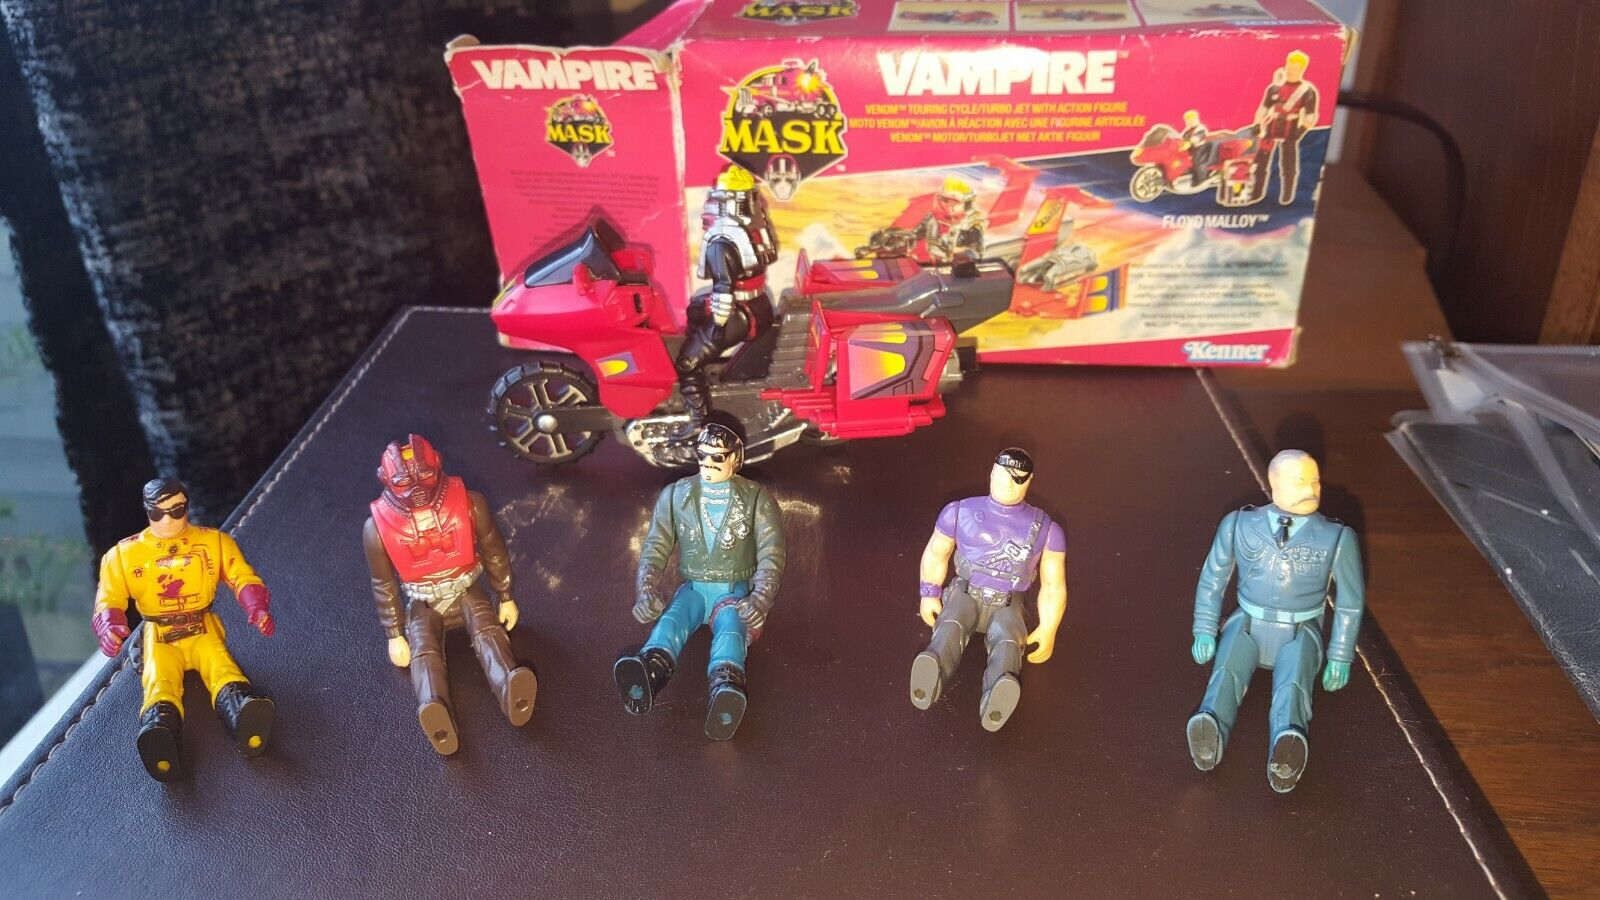 KENNER M.A.S.K. MASK VAMPIRE with FLOYD MALLOY + VANDAL 100% COMPLETE SET 1986